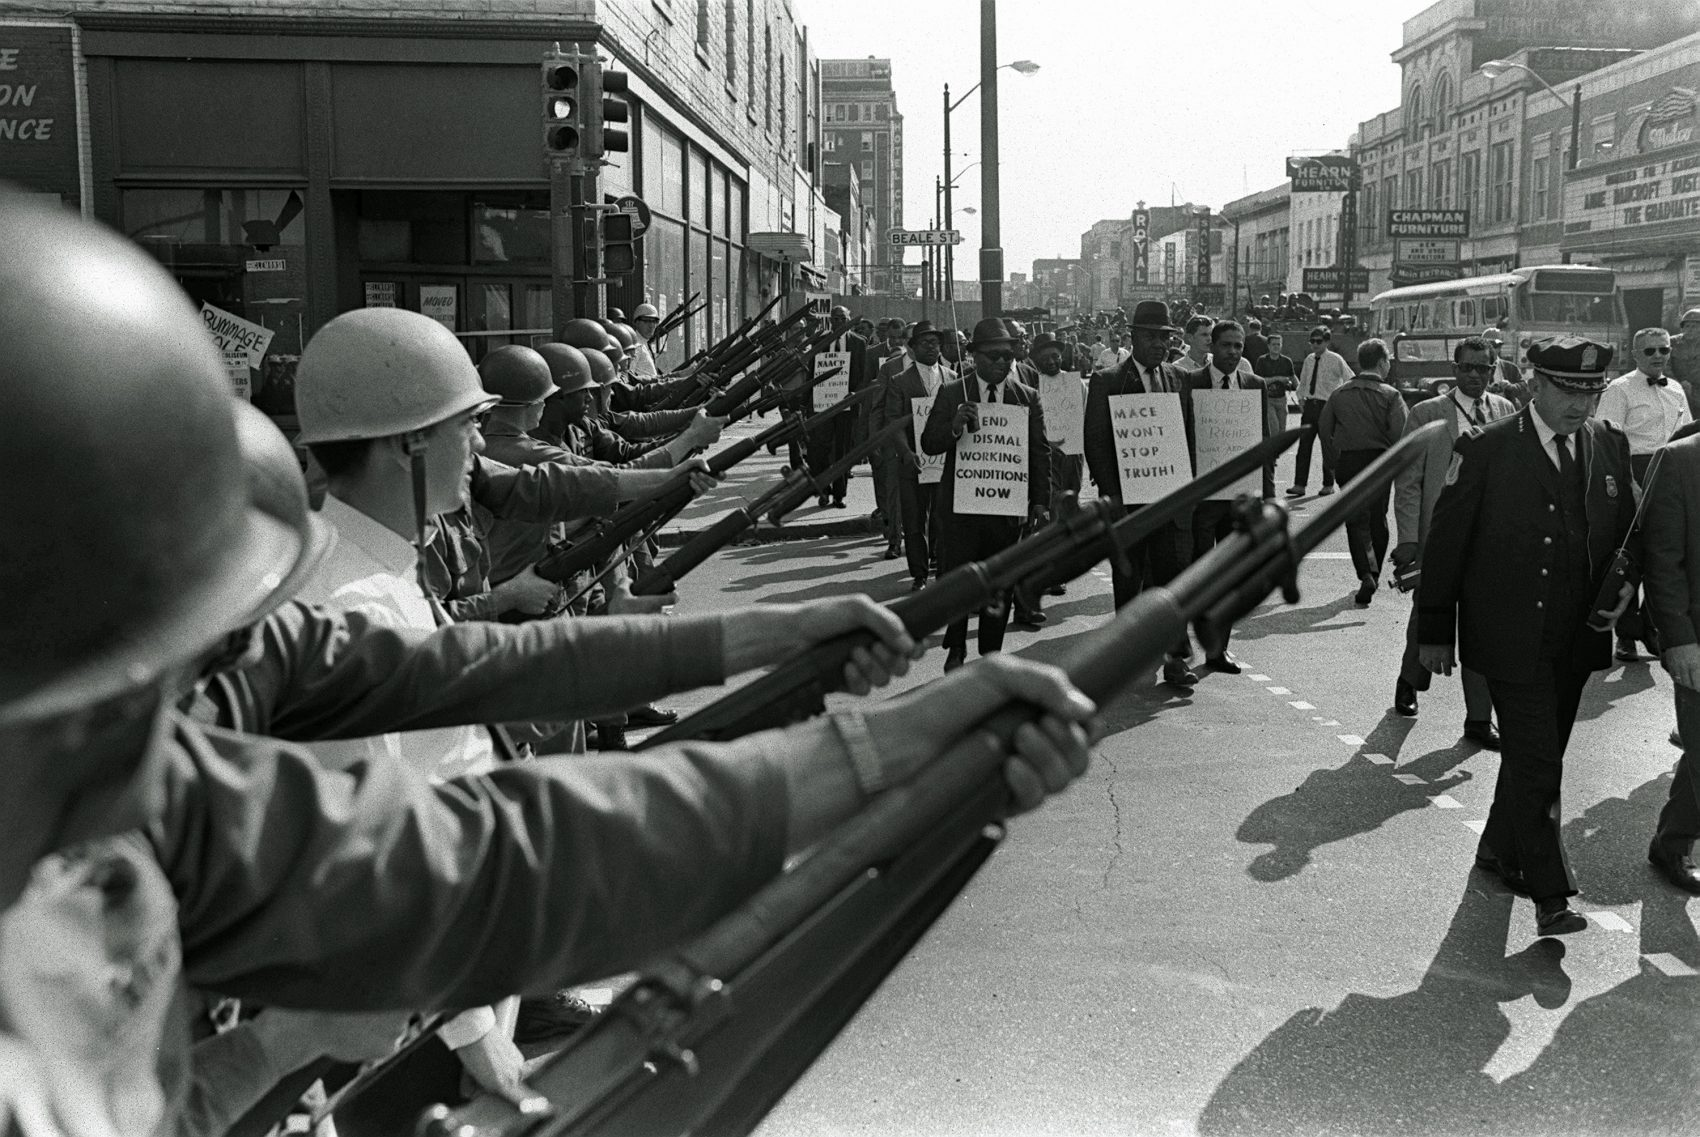 Striking Memphis sanitation workers march past Tennessee National Guard troops with fixed bayonets during a 20-block march to City Hall, March 29, 1968, one day after a similar march erupted in violence, leaving one person dead and several injured. (Charlie Kelly/AP)